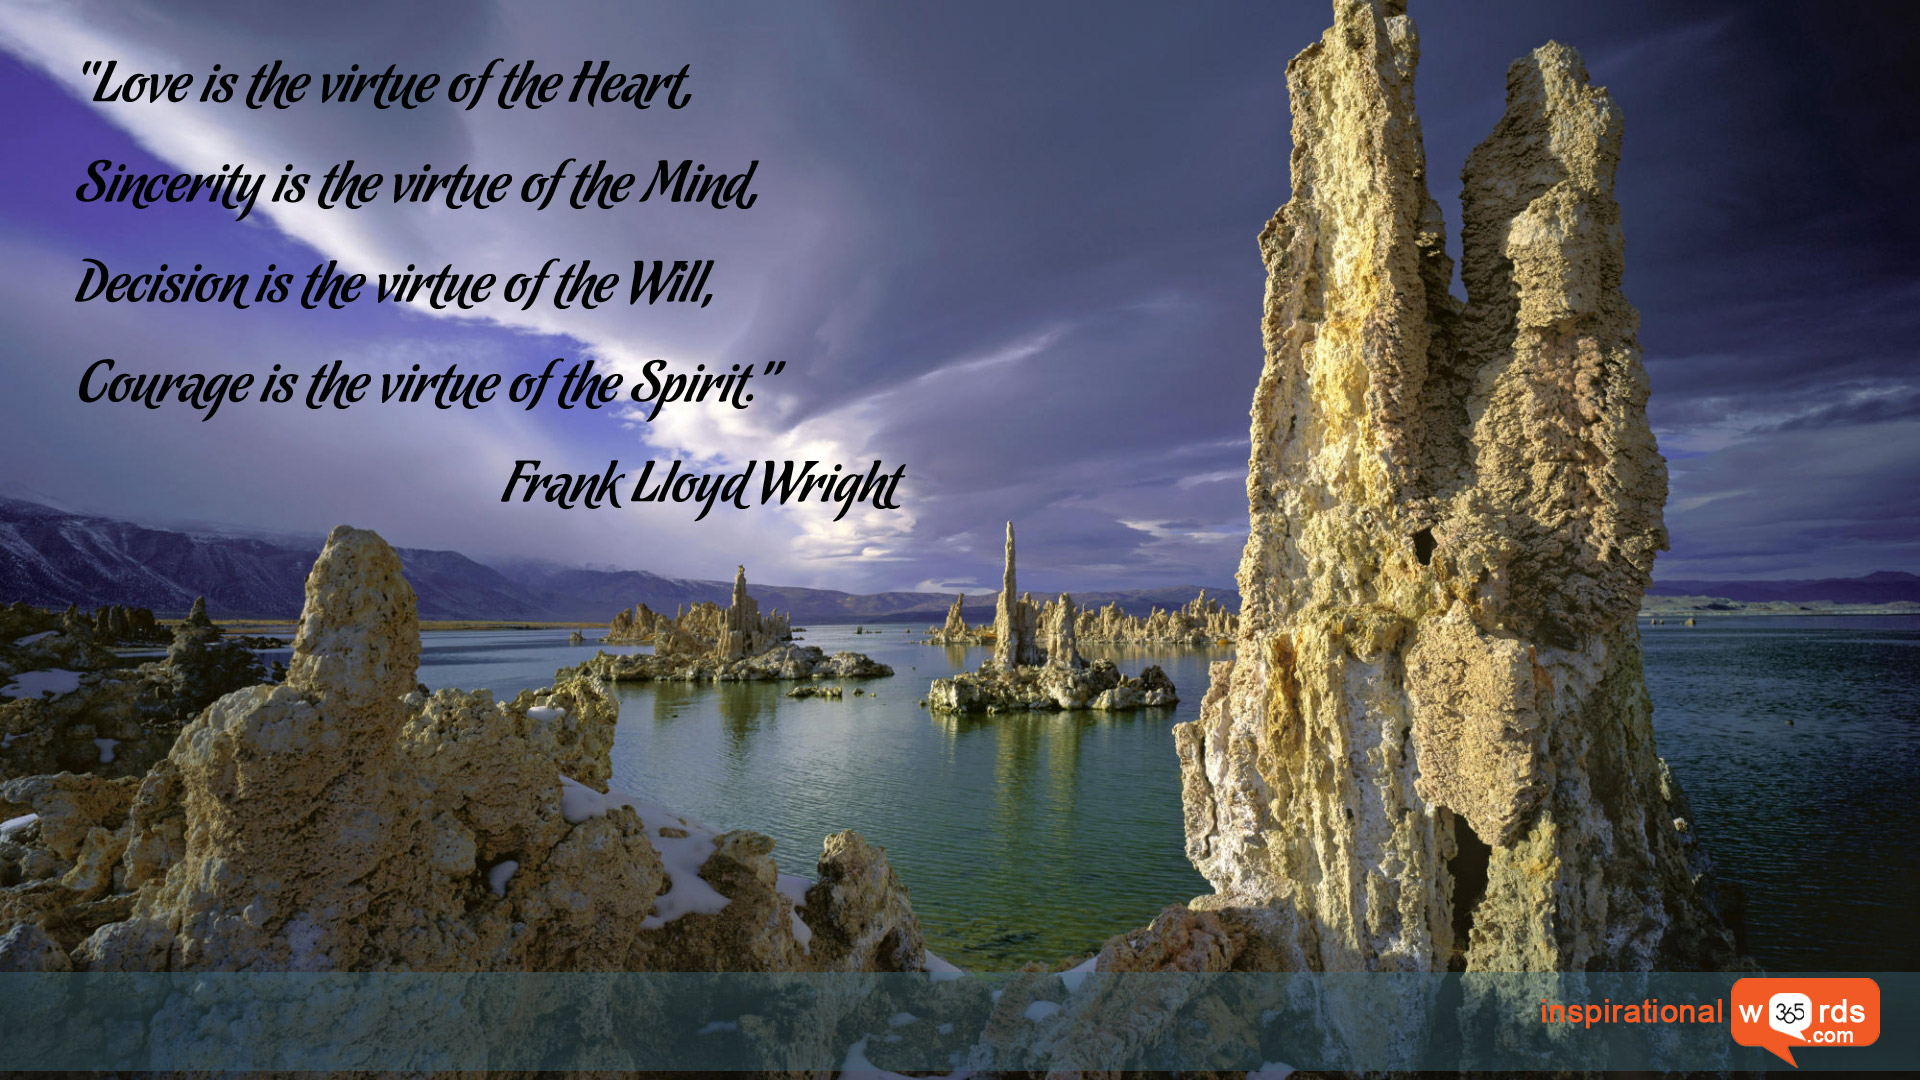 Inspirational Wallpaper Quote by Frank Lloyd Wright